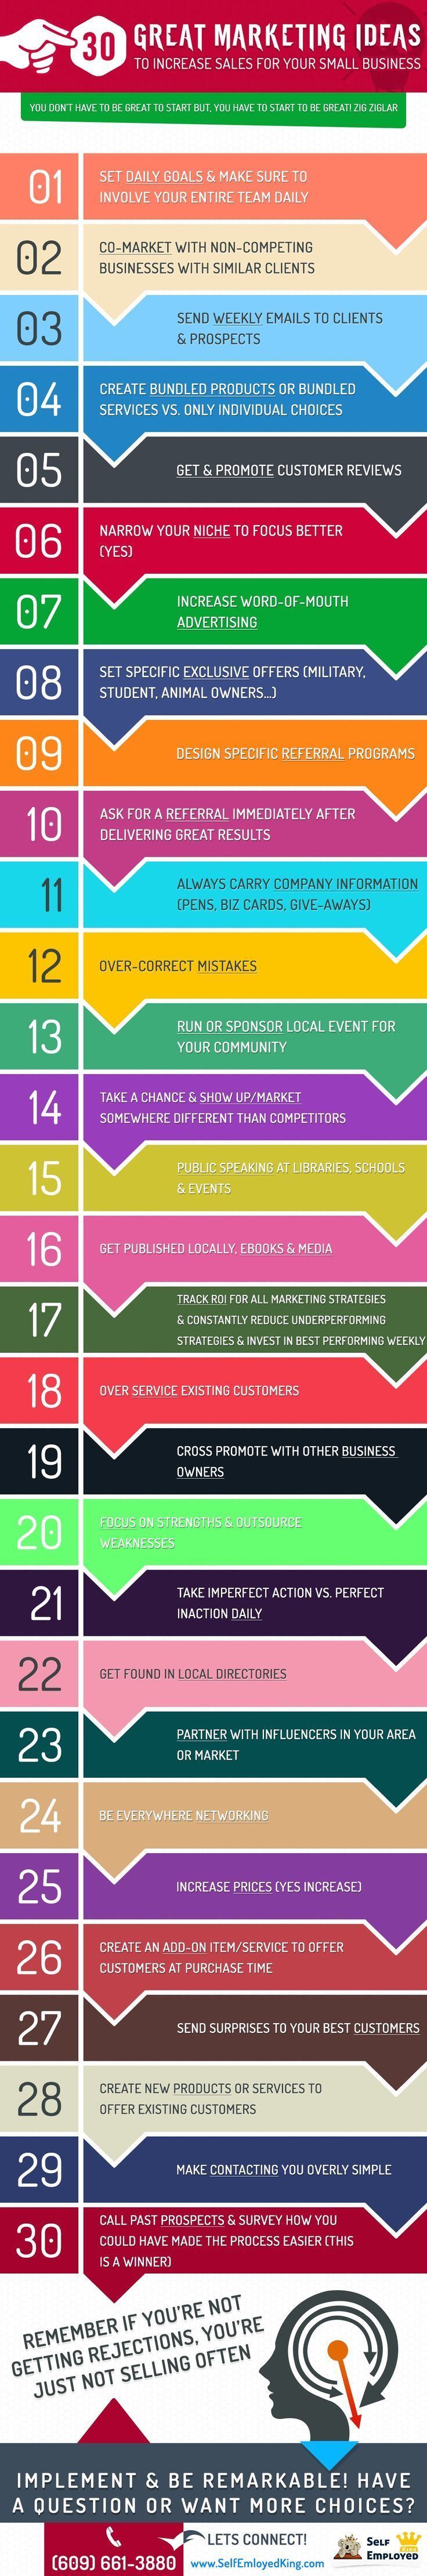 30 Marketing Ideas To Increase Sales For Your Small Business Pictures, Photos, and Images for Facebook, Tumblr, Pinterest, and Twitter